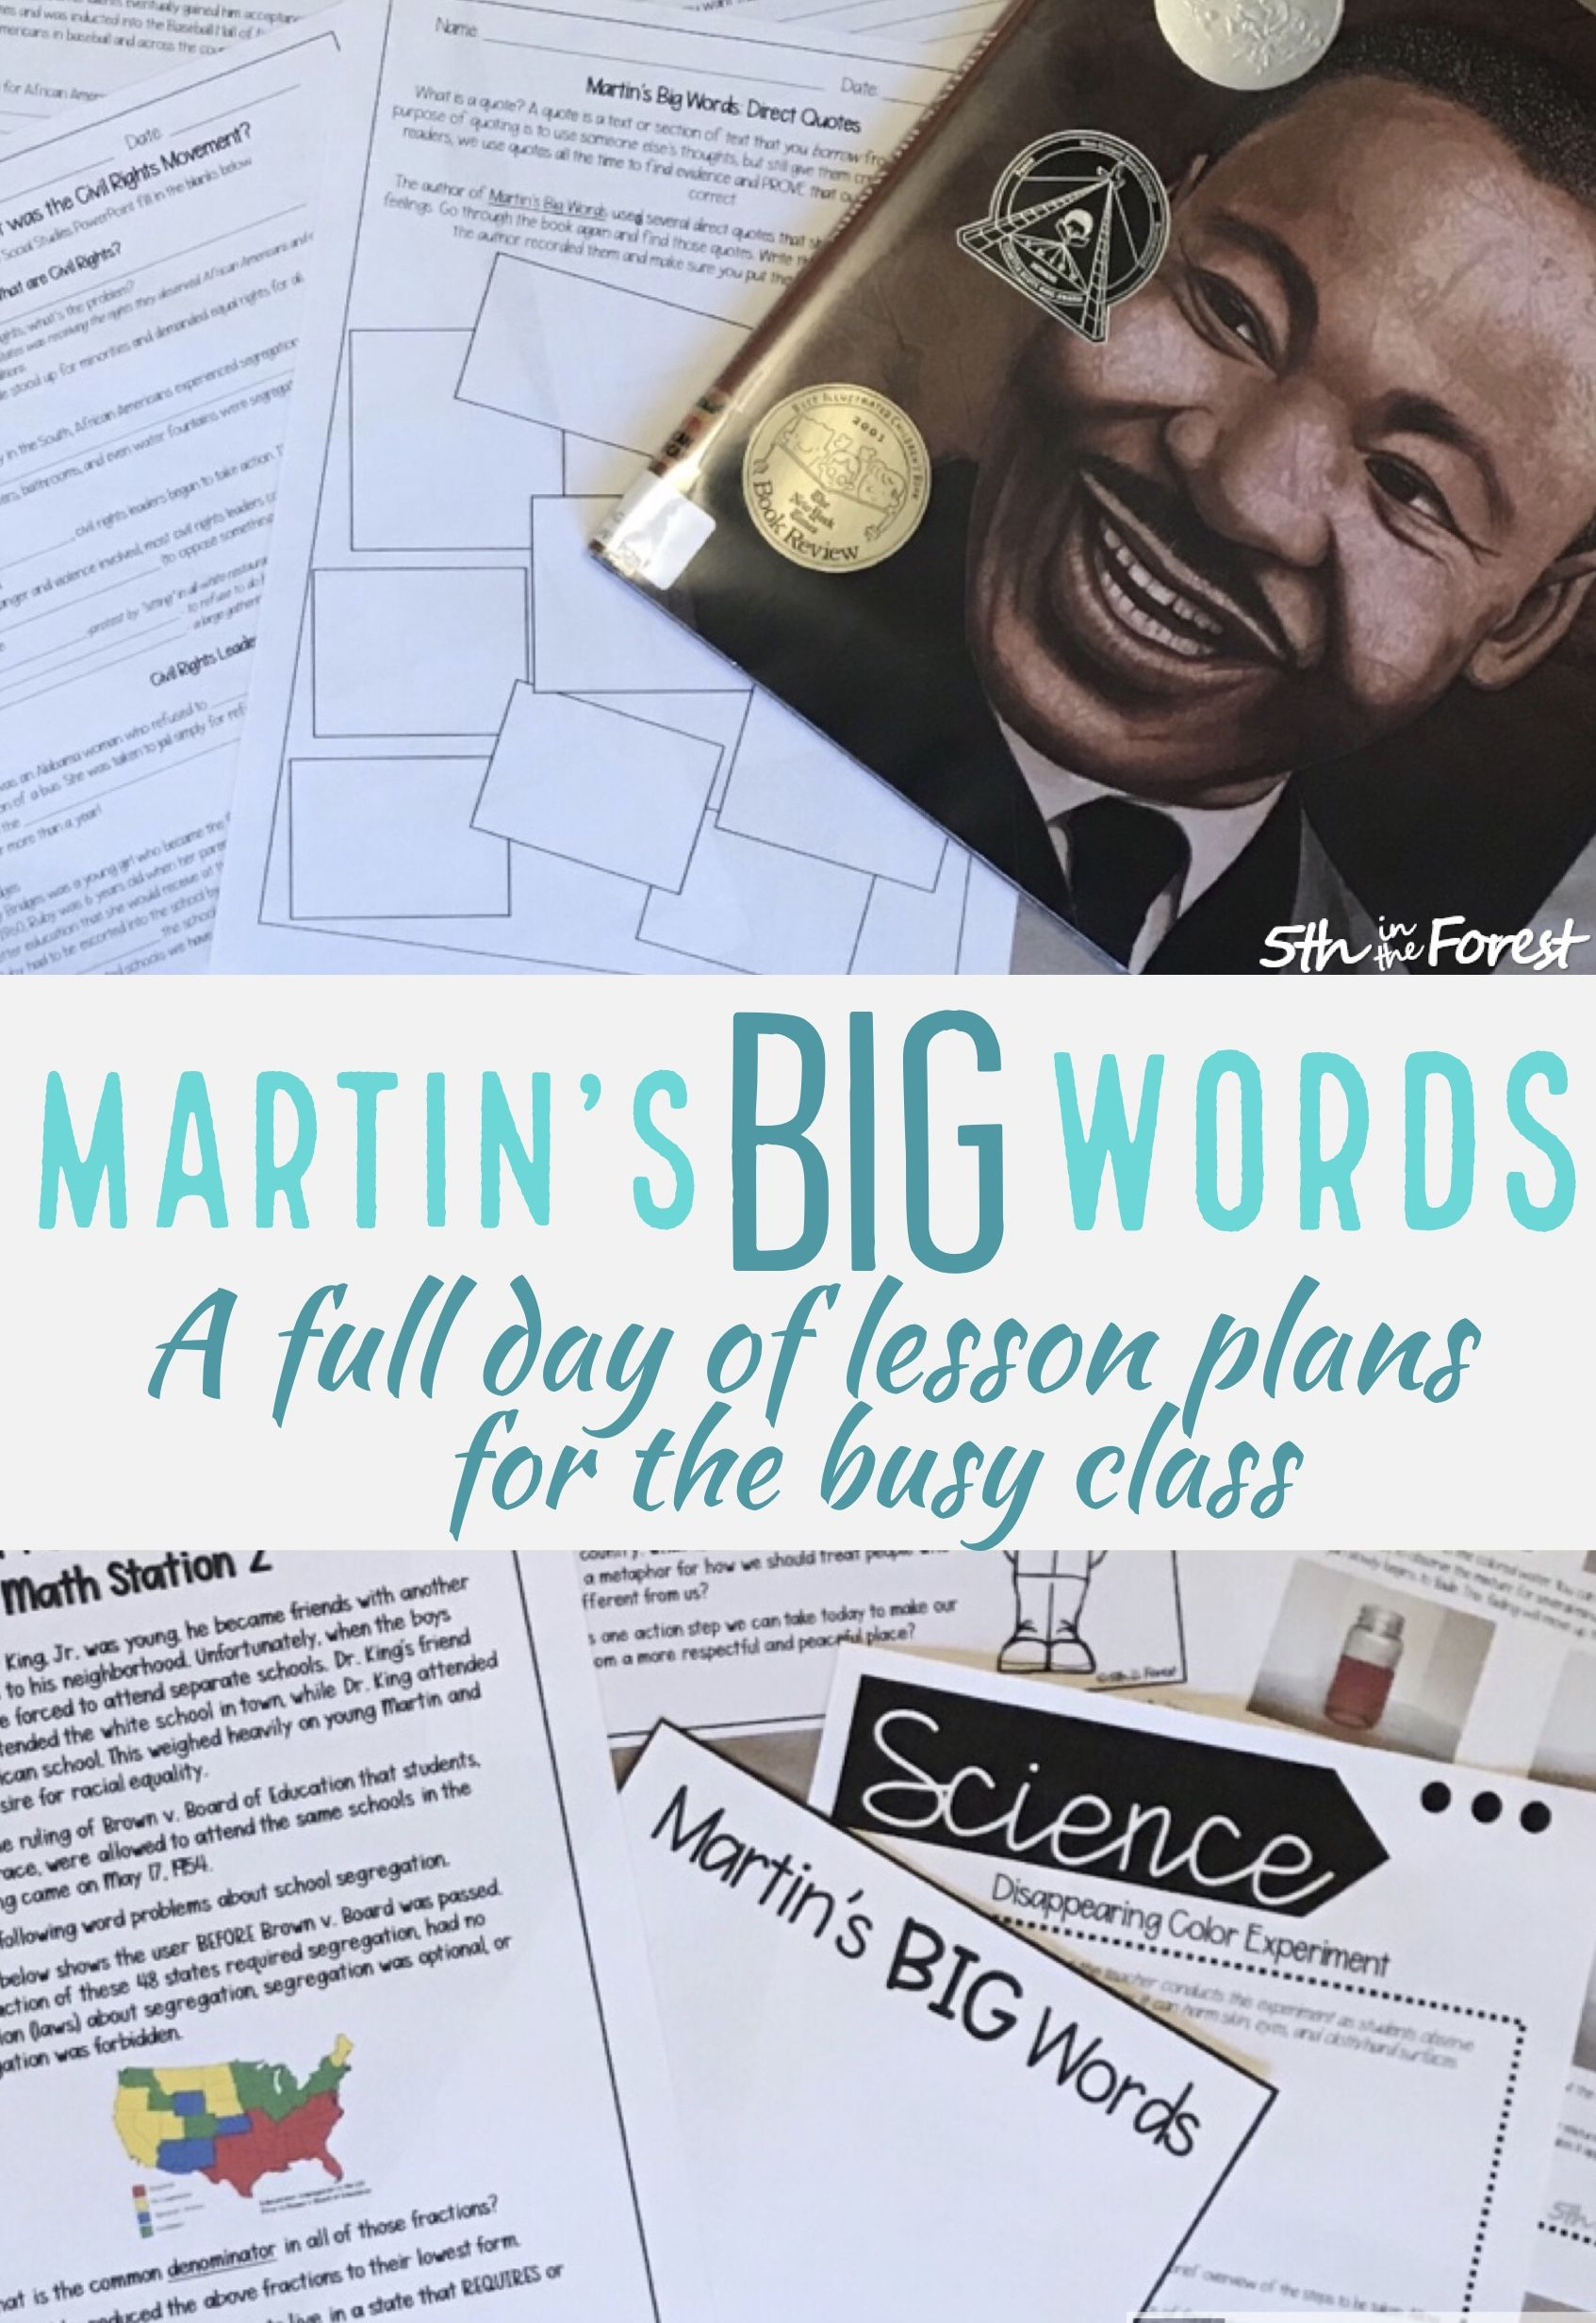 Martins Big Words Full Day Of Lesson Plans With Images Martins Big Words Lesson Lesson Plans Big Words